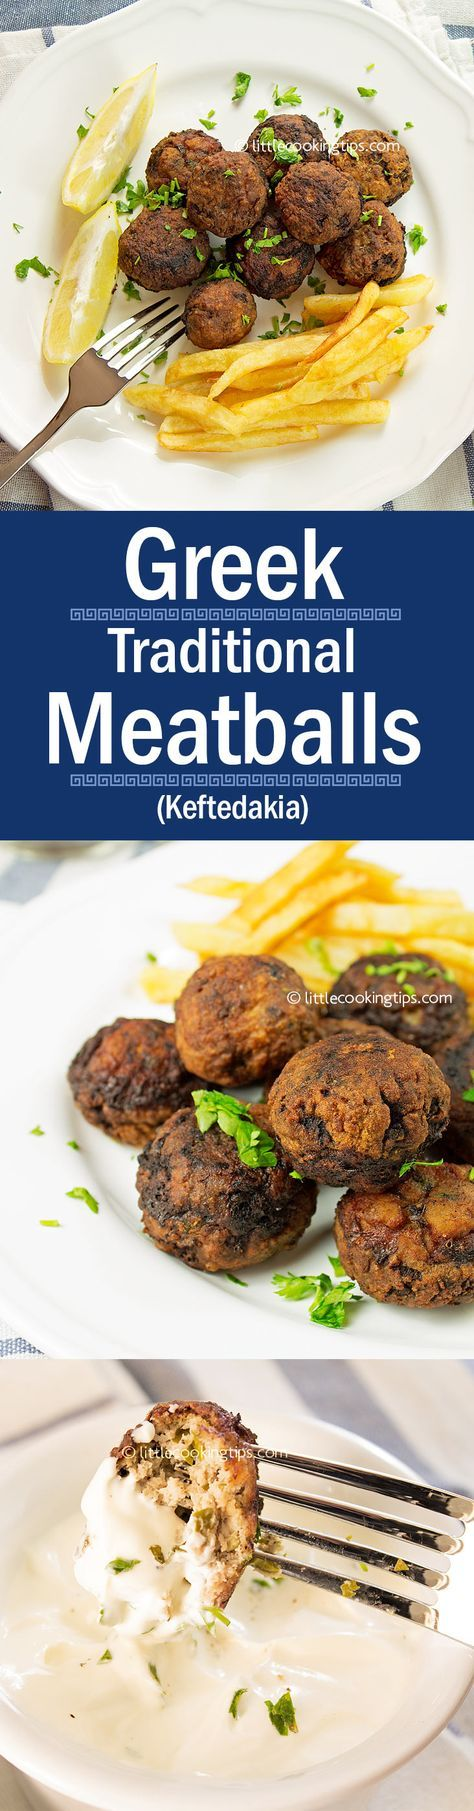 One of the best and easy beef recipes: authentic, traditional Greek meatballs (keftedes). Served with tzatziki and/or Horiatiki salad, this is the ultimate comfort food. Simple and delicious, this is a recipe we love to cook often when we have people over.  Repin to your own inspiration board! #Greek #meatballs #traditional #keftedakia